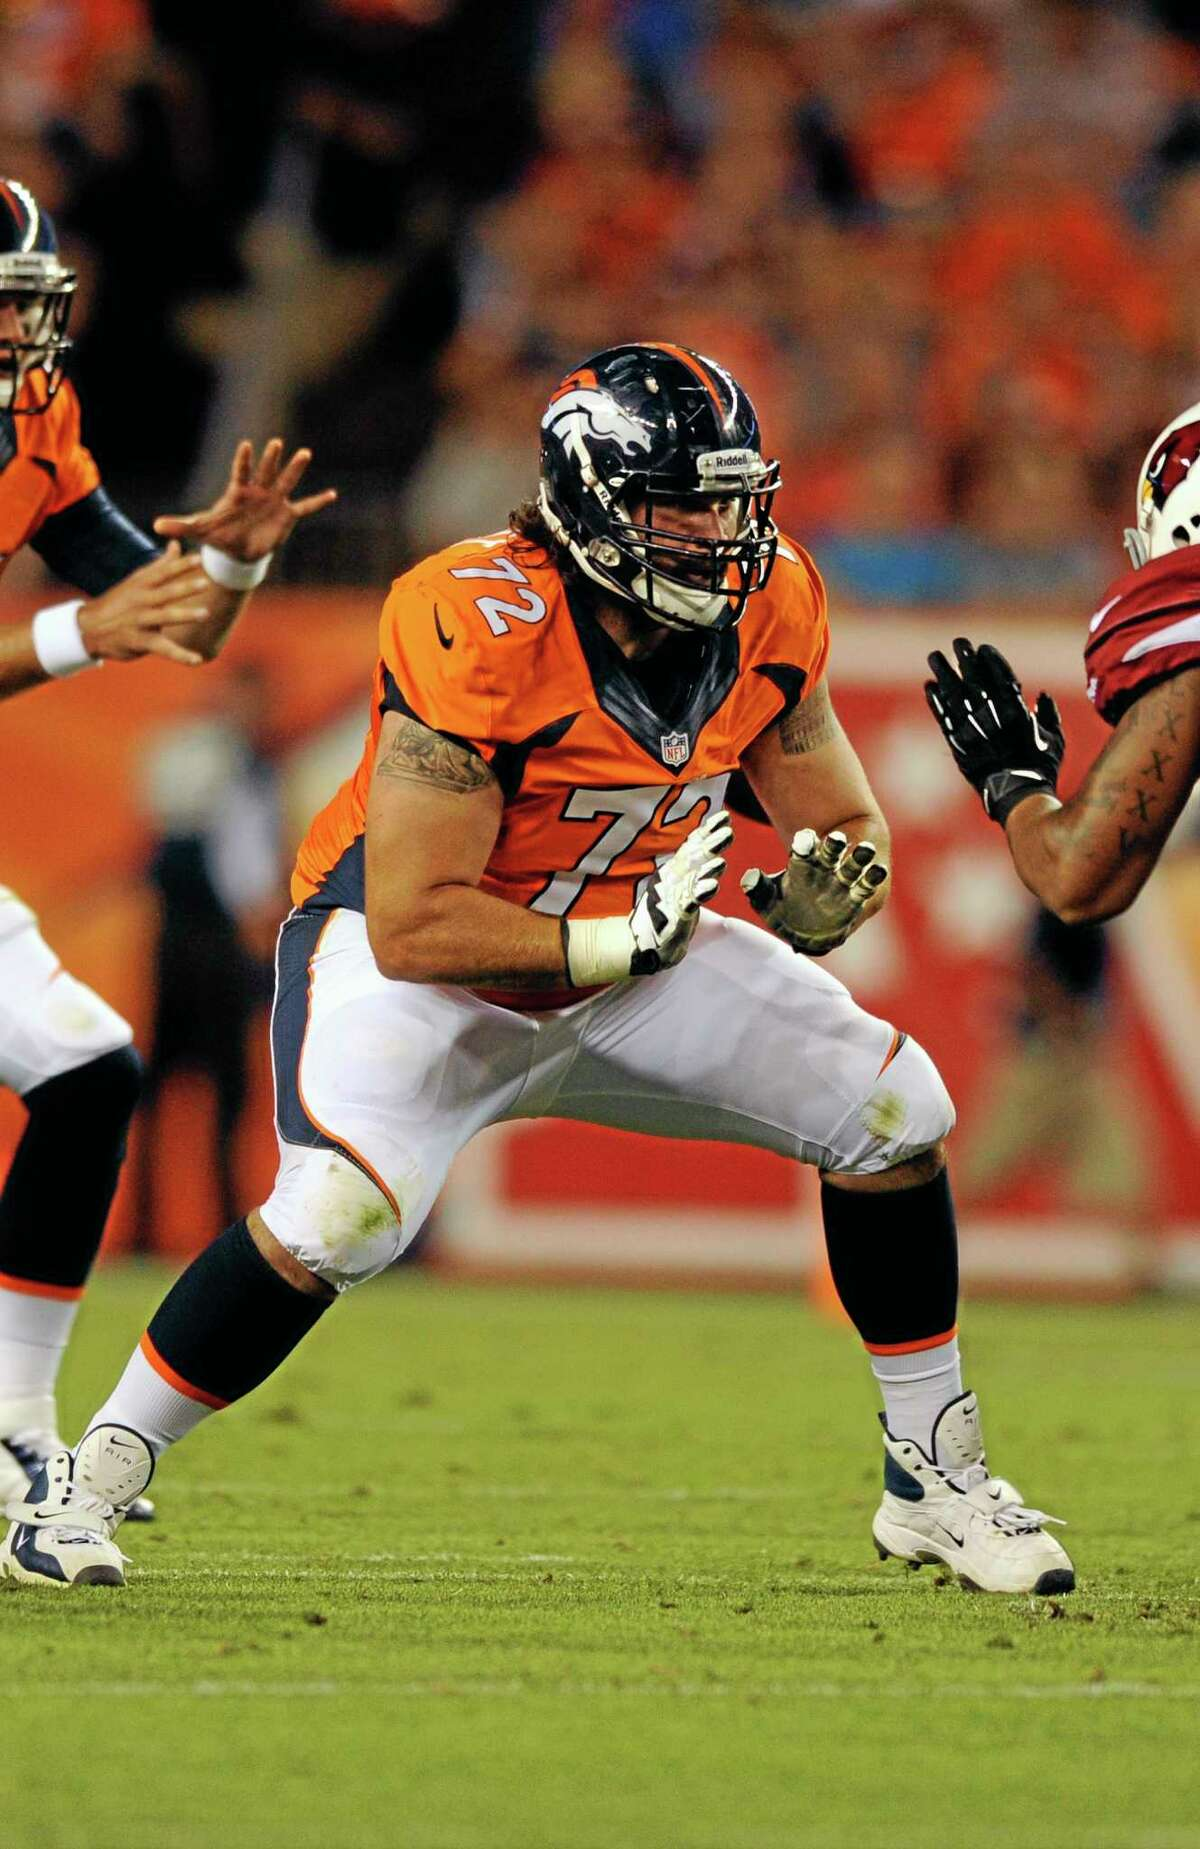 Guilford native and now ex-Broncos guard John Moffitt plays here against the Arizona Cardinals during a preseason game on Aug. 29 in Denver. Moffitt says he quit the NFL this week not because he was unhappy with a lack of playing time in Denver, but because he'd lost his love for the game and was tired of risking his health. The Broncos put him on their reserve/left team list on Tuesday when they activated center J.D. Walton from the physically unable to perform list.